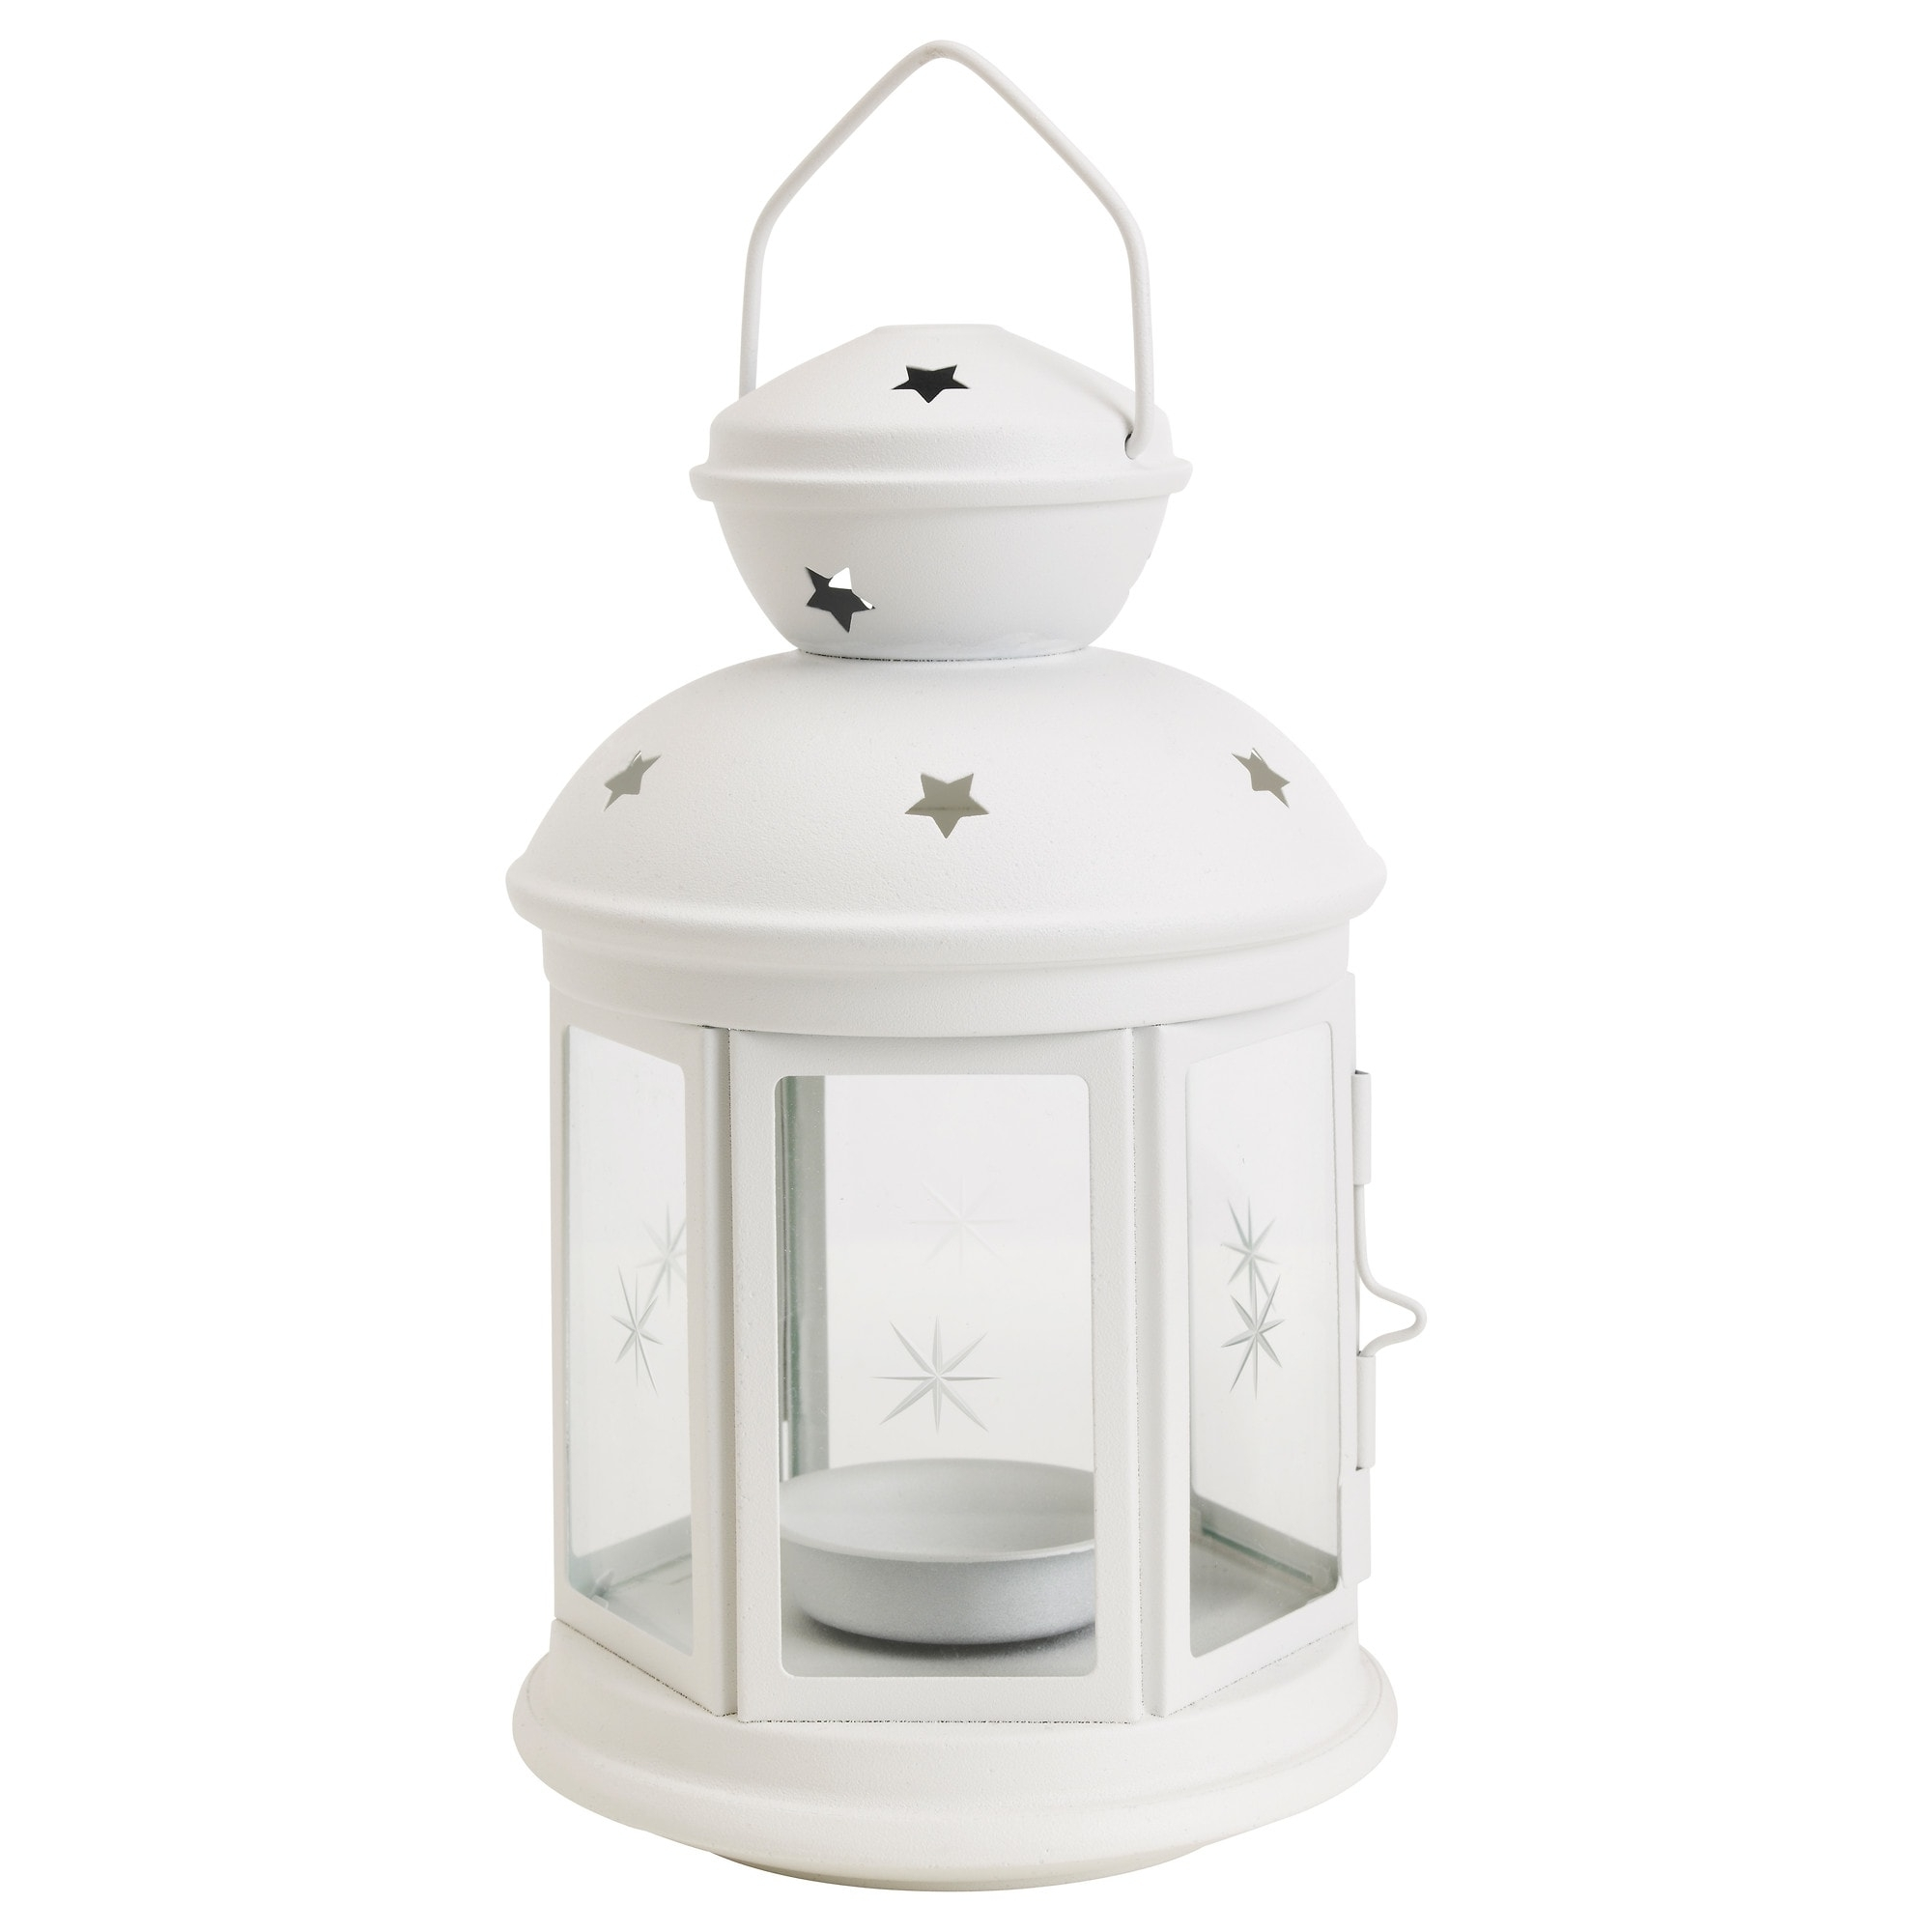 Trendy Outdoor Grey Lanterns Pertaining To Rotera Lantern For Tealight In/outdoor White 21 Cm – Ikea (View 15 of 20)